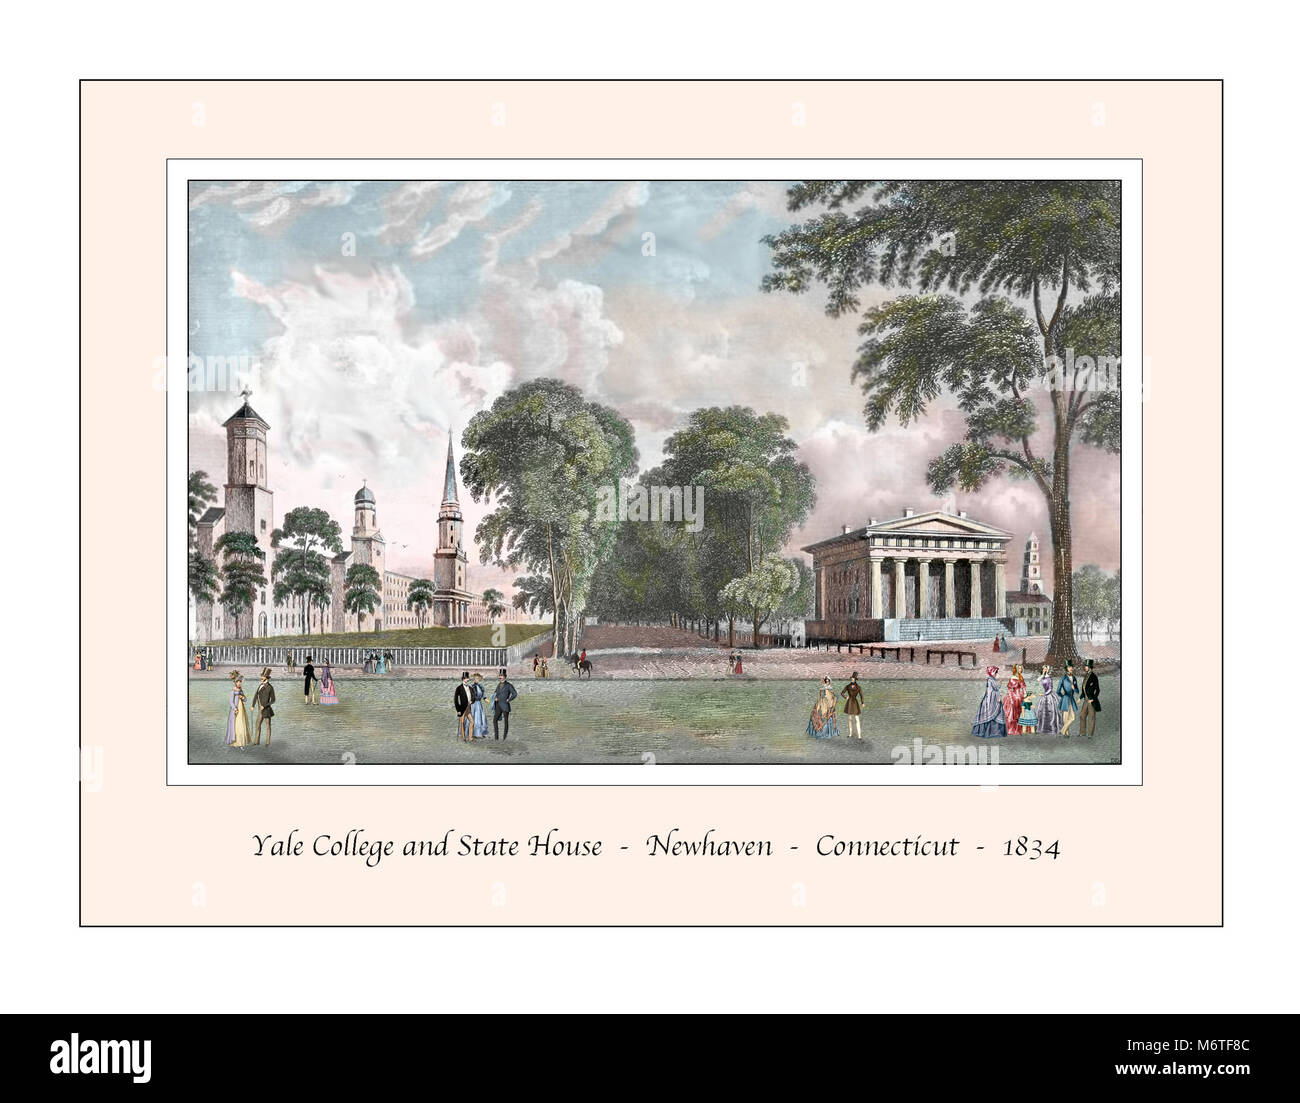 Yale College and State House Original Design based on a 19th century Engraving - Stock Image